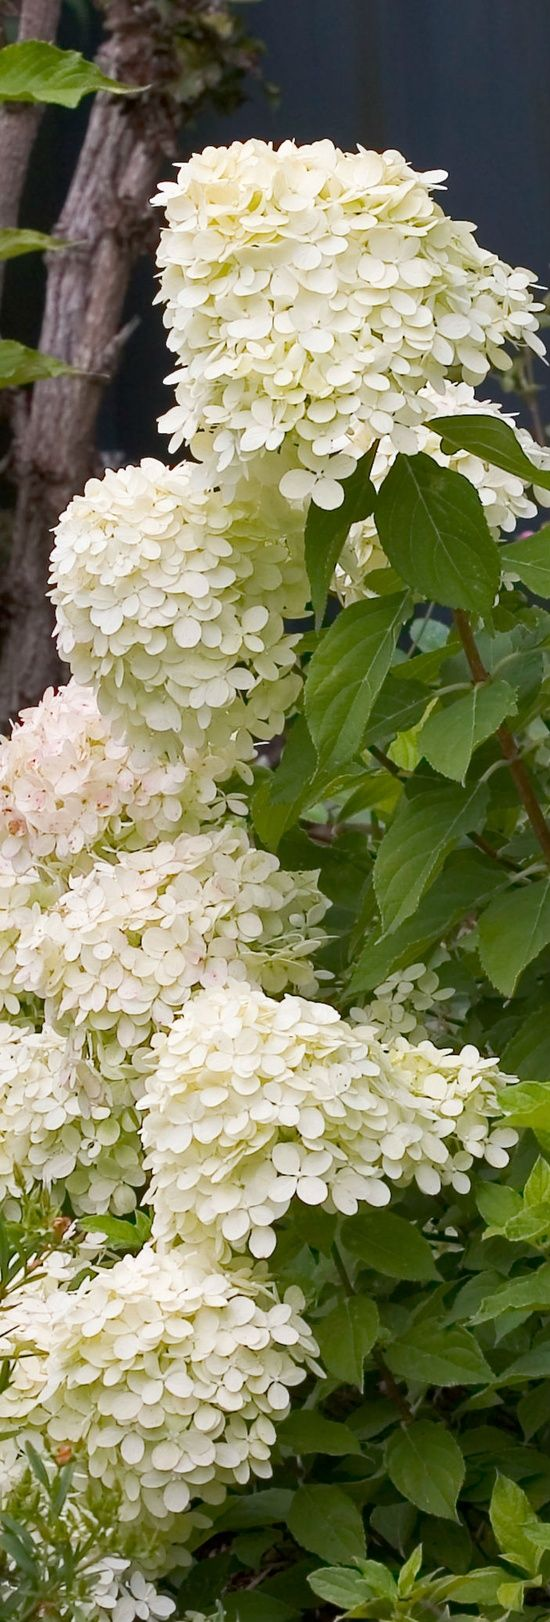 Hydrangeas, I love this beautiful showy flower and my dream home has thousands in every color!!!!!!!!!!!